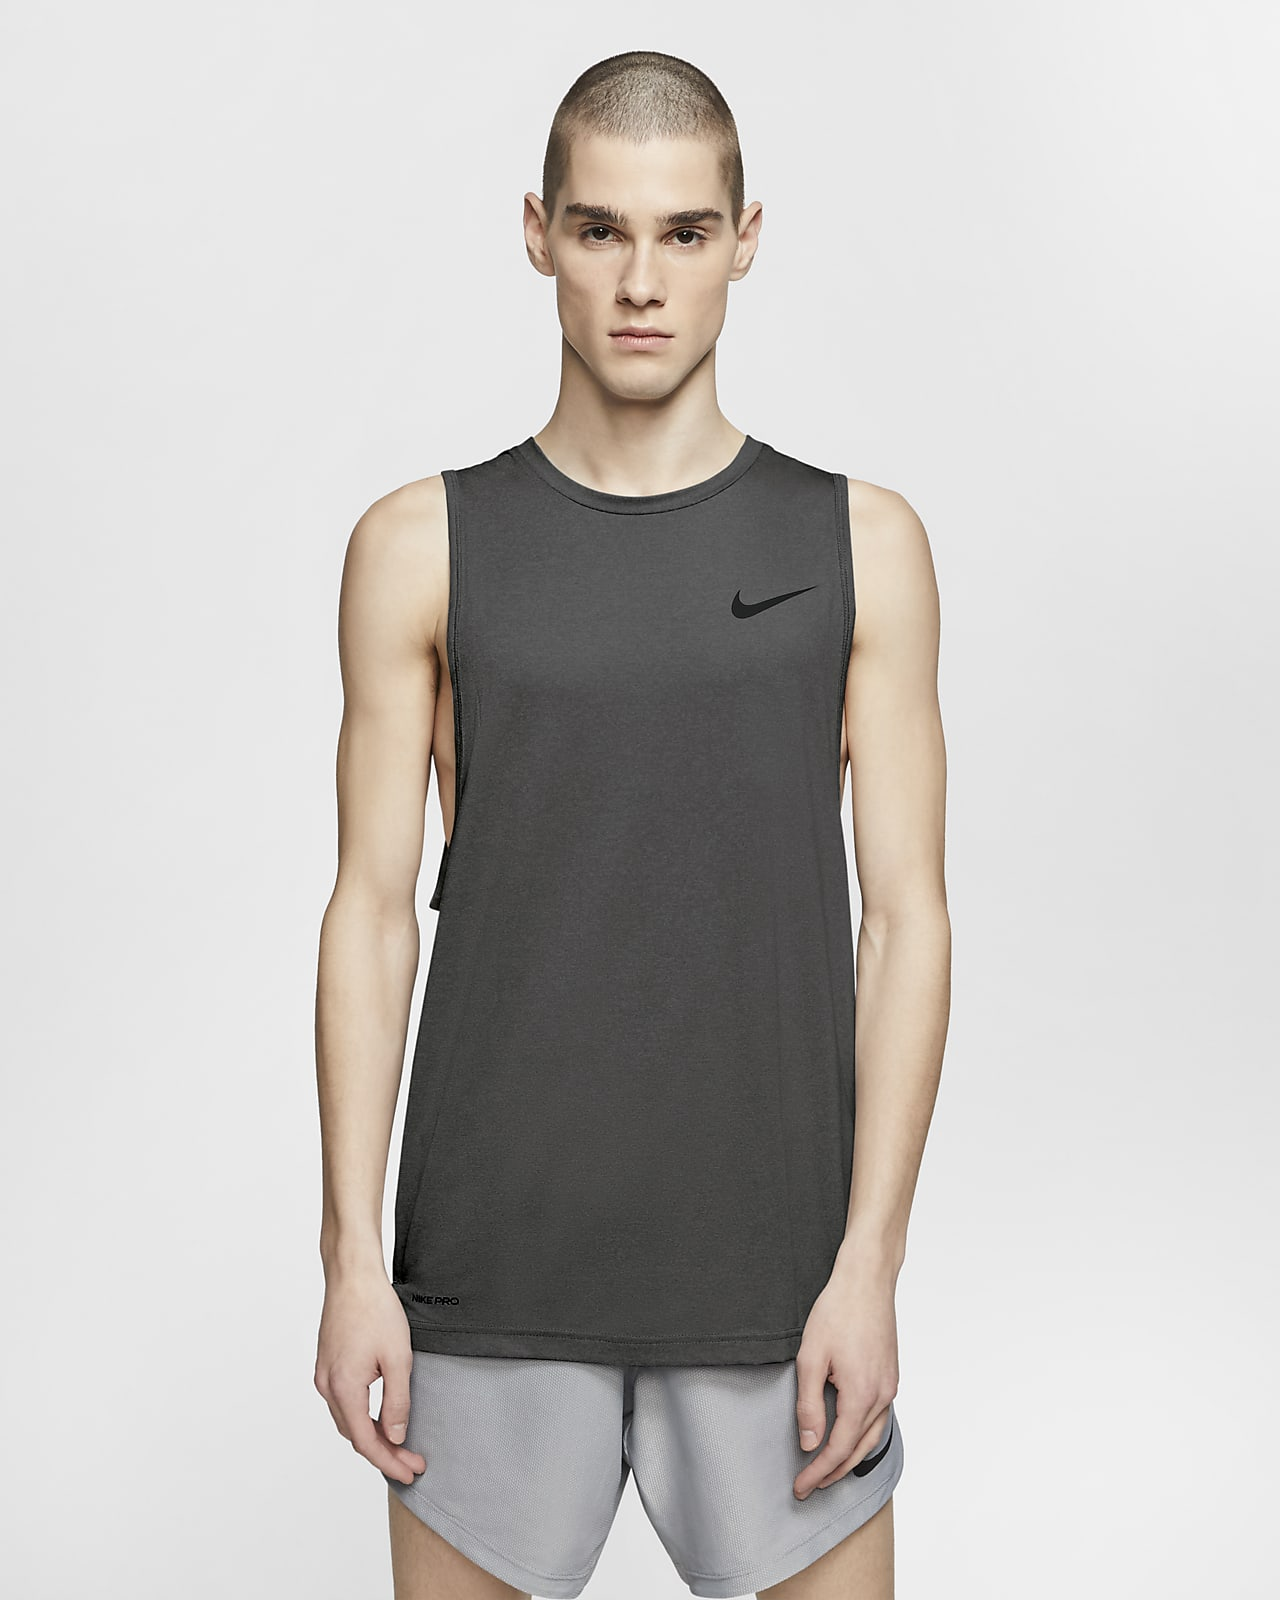 Nike Men's Training Tank